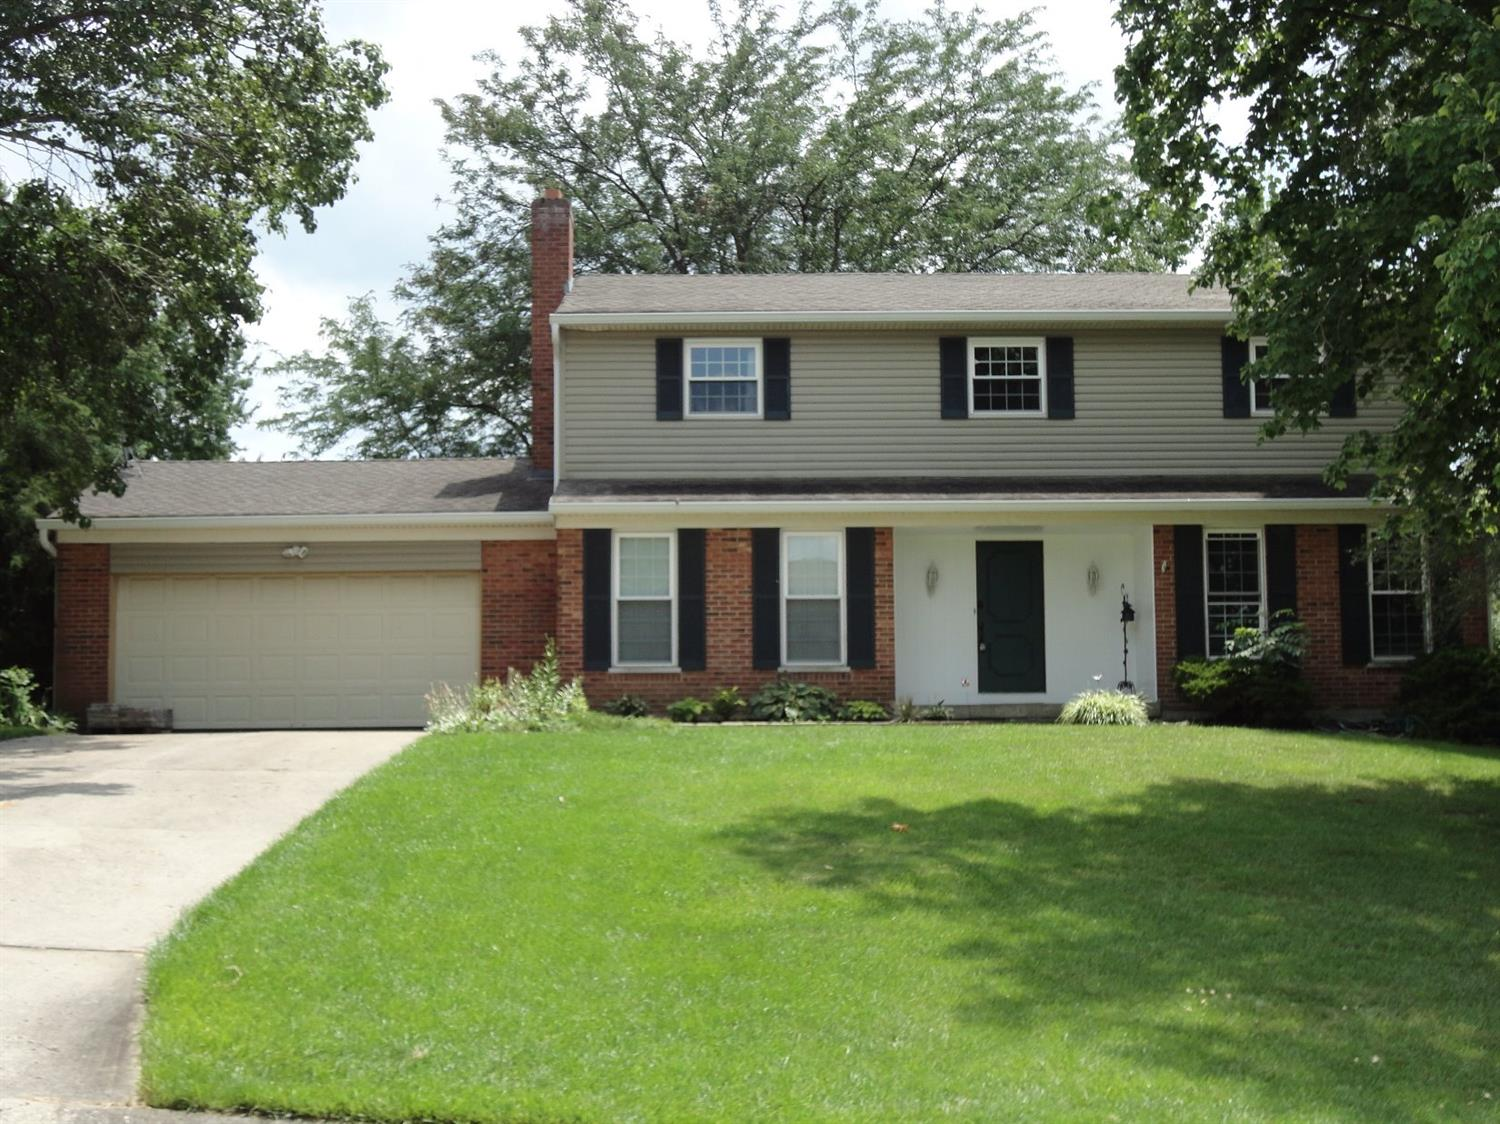 5314 Pinecliff Ln Monfort Hts., OH